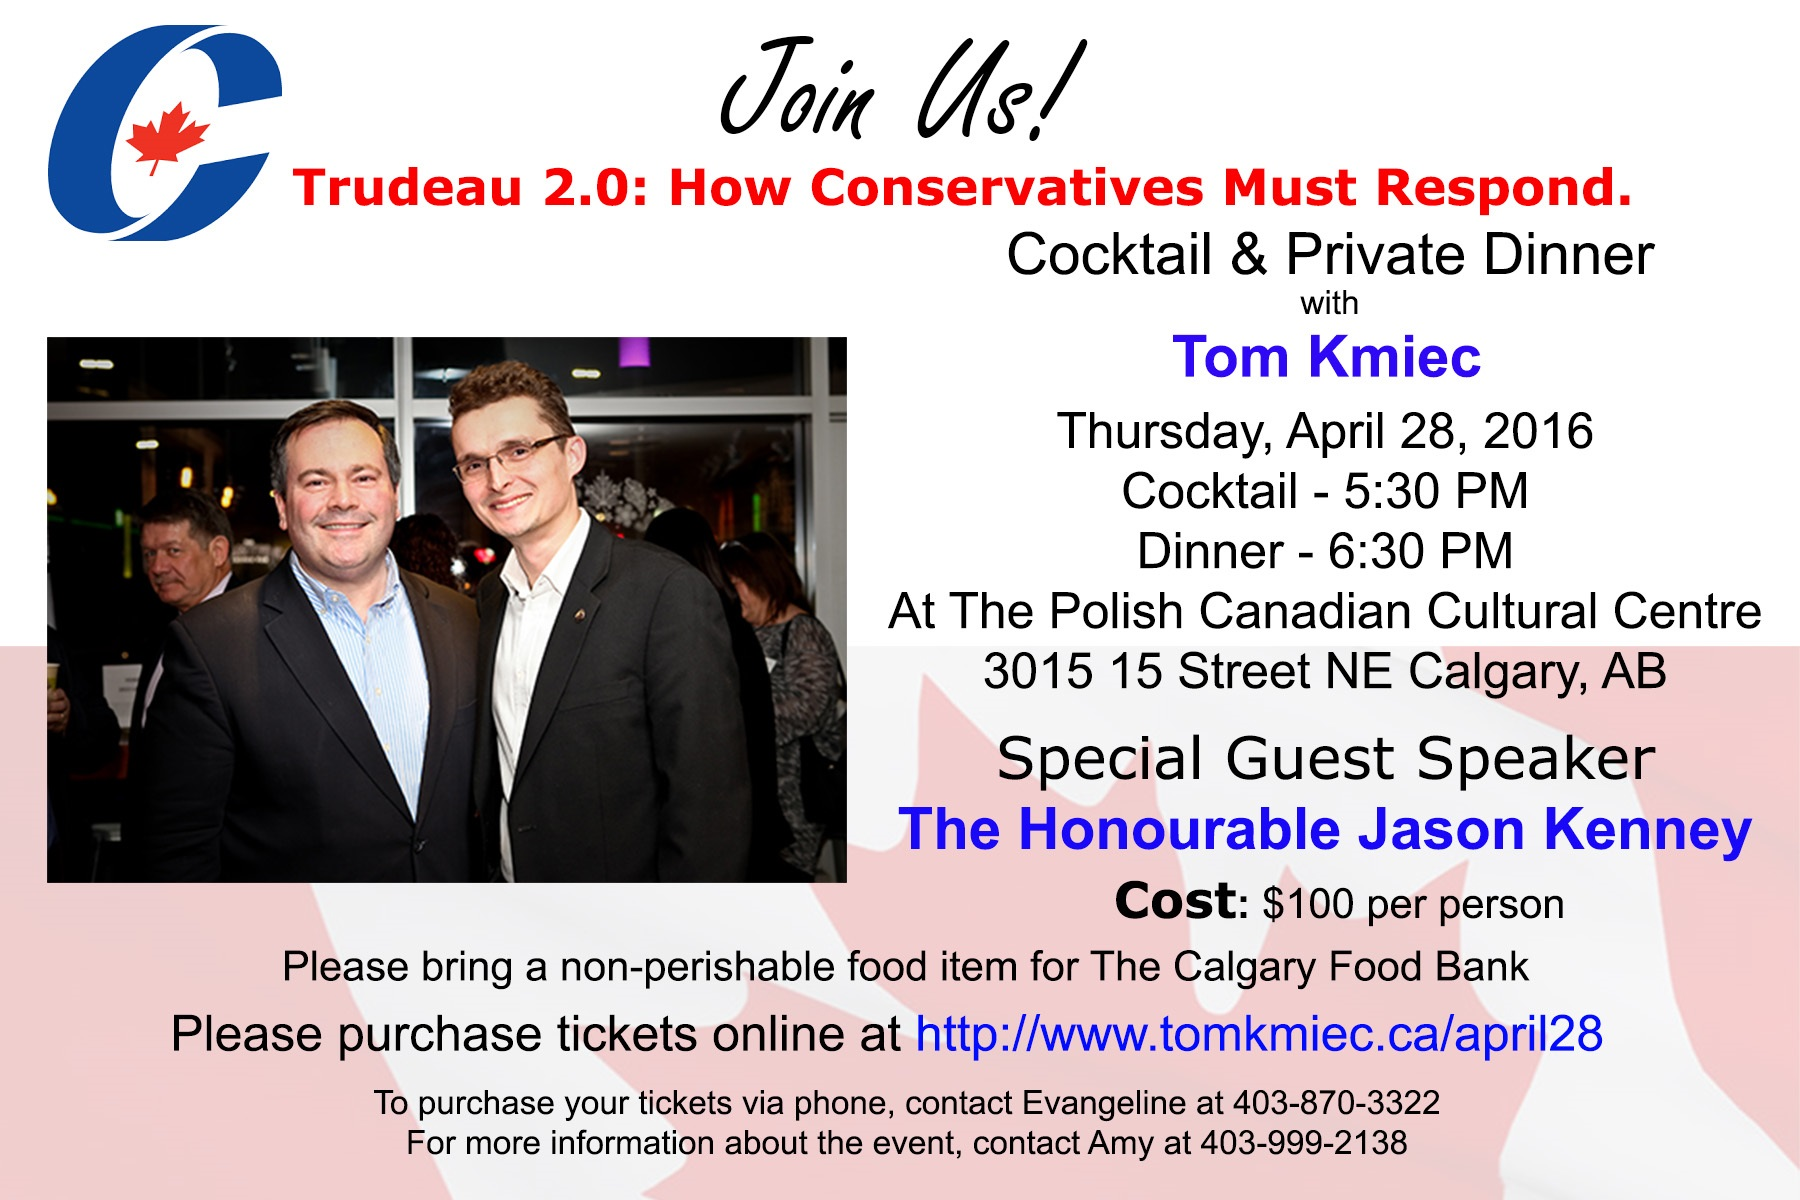 Tom_Kmiec_Fundraiser_April_28th.jpg